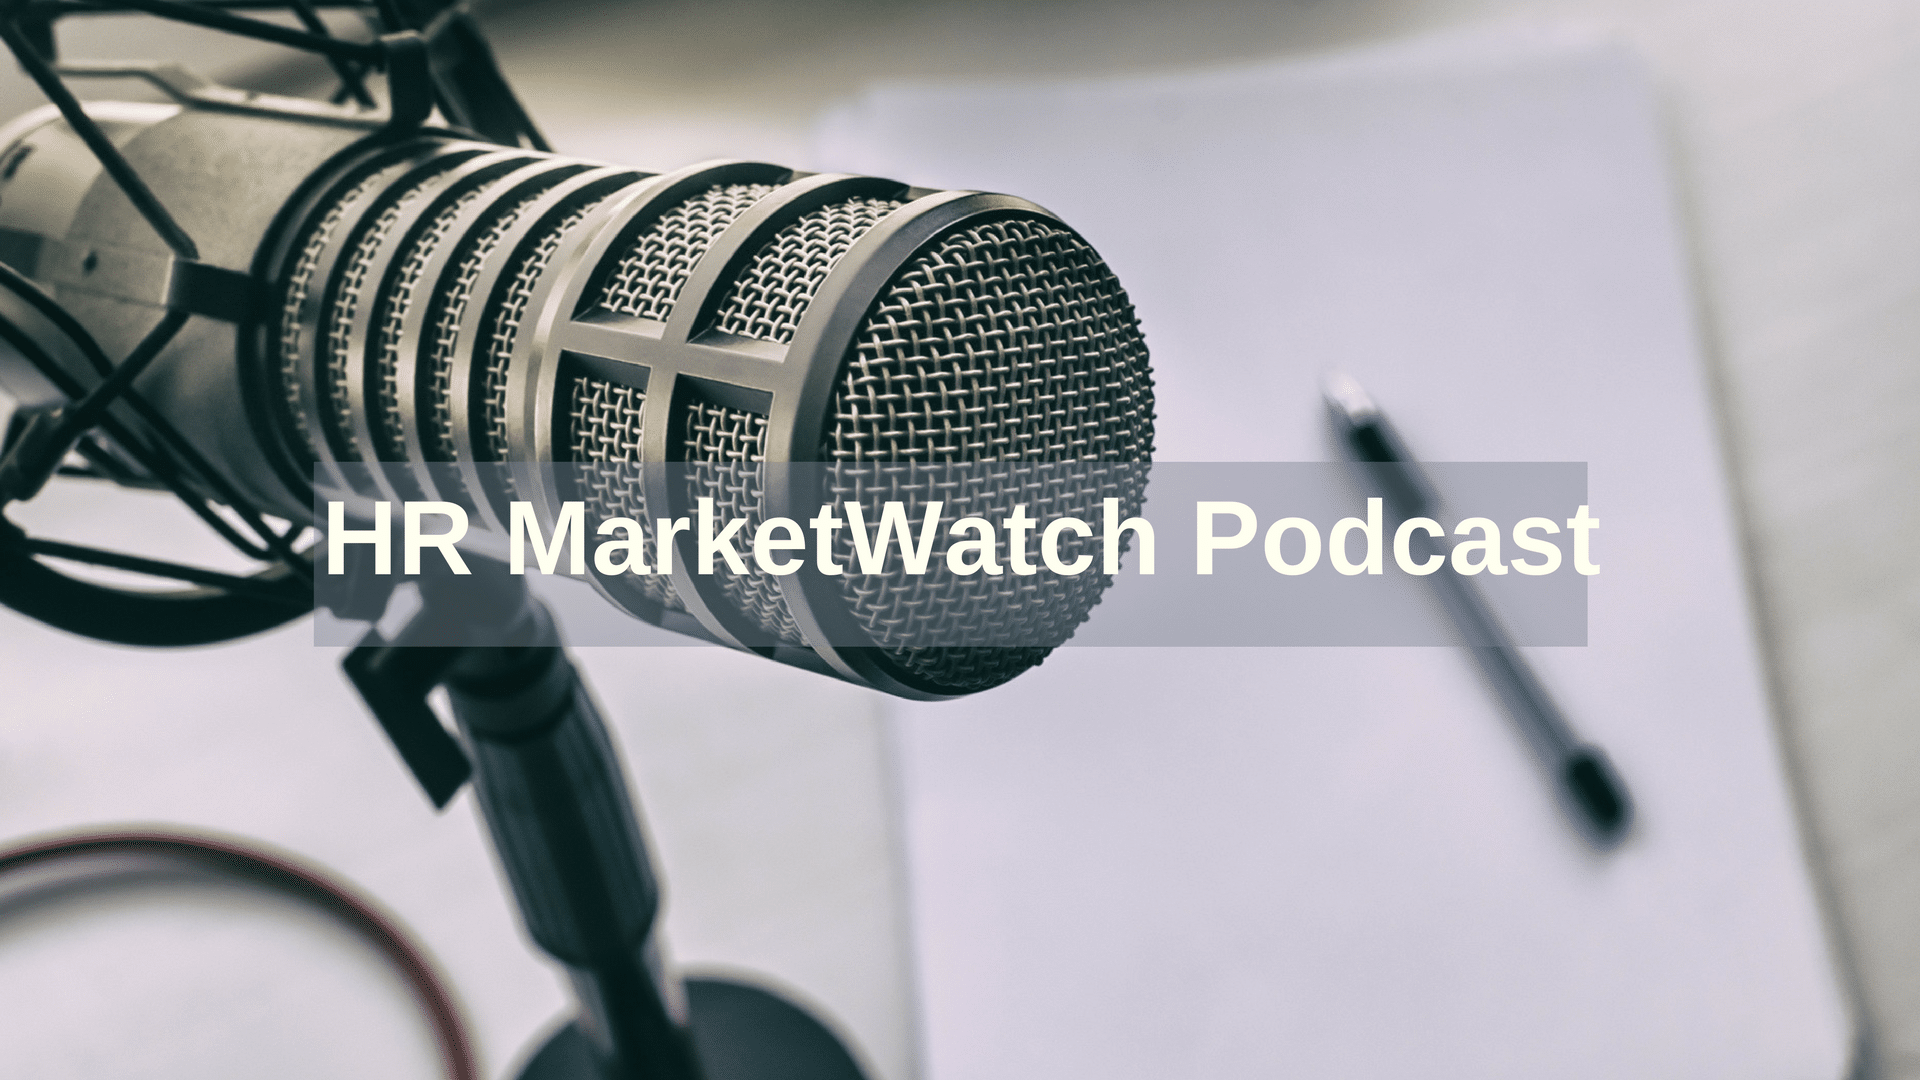 HR MarketWatch: Get Real About Talent Acquisition, AI, and Jobs